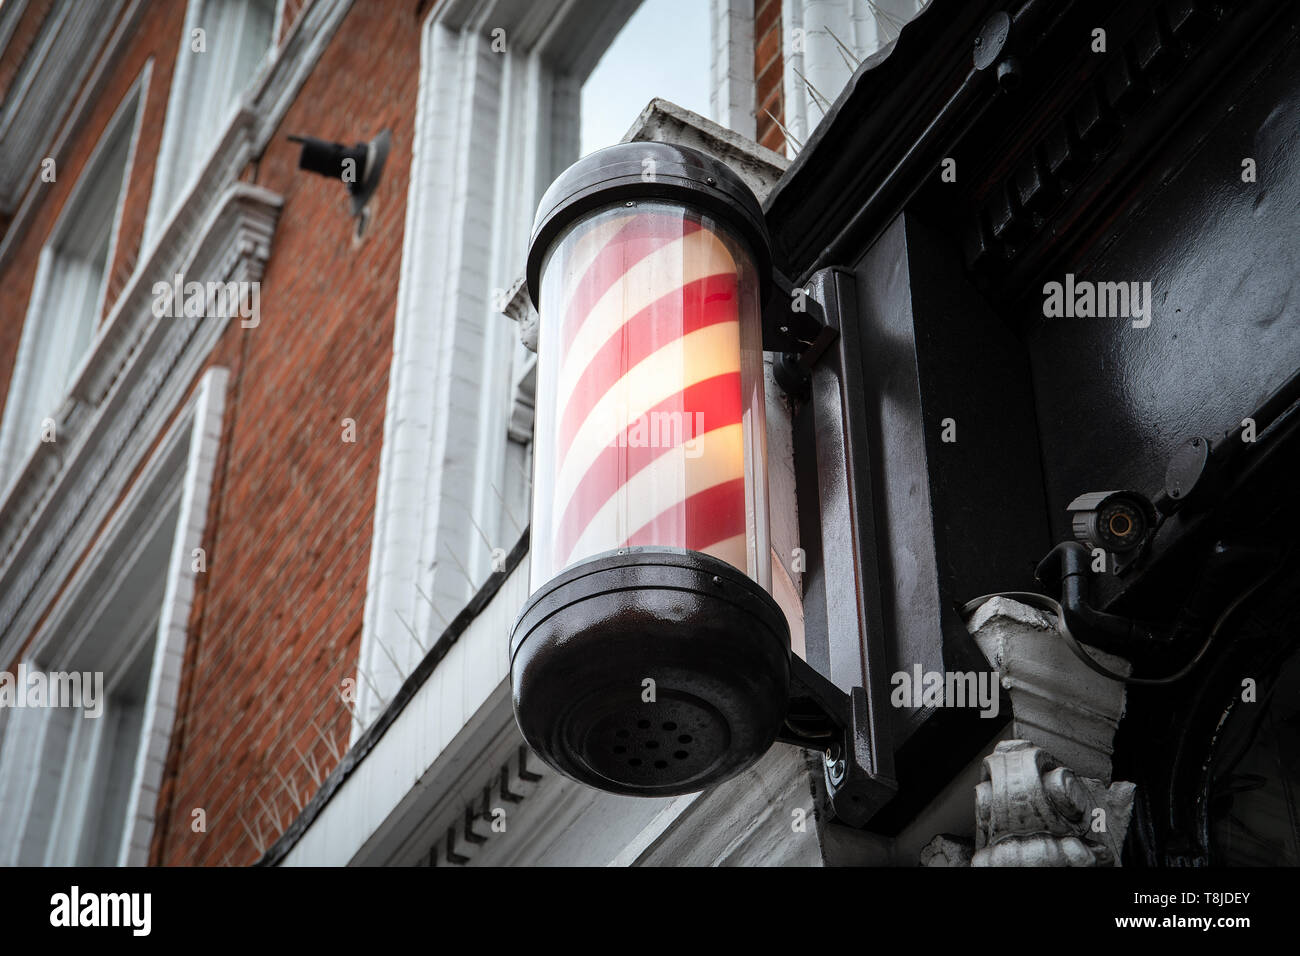 A barber's pole - sign used by barbers - Stock Image